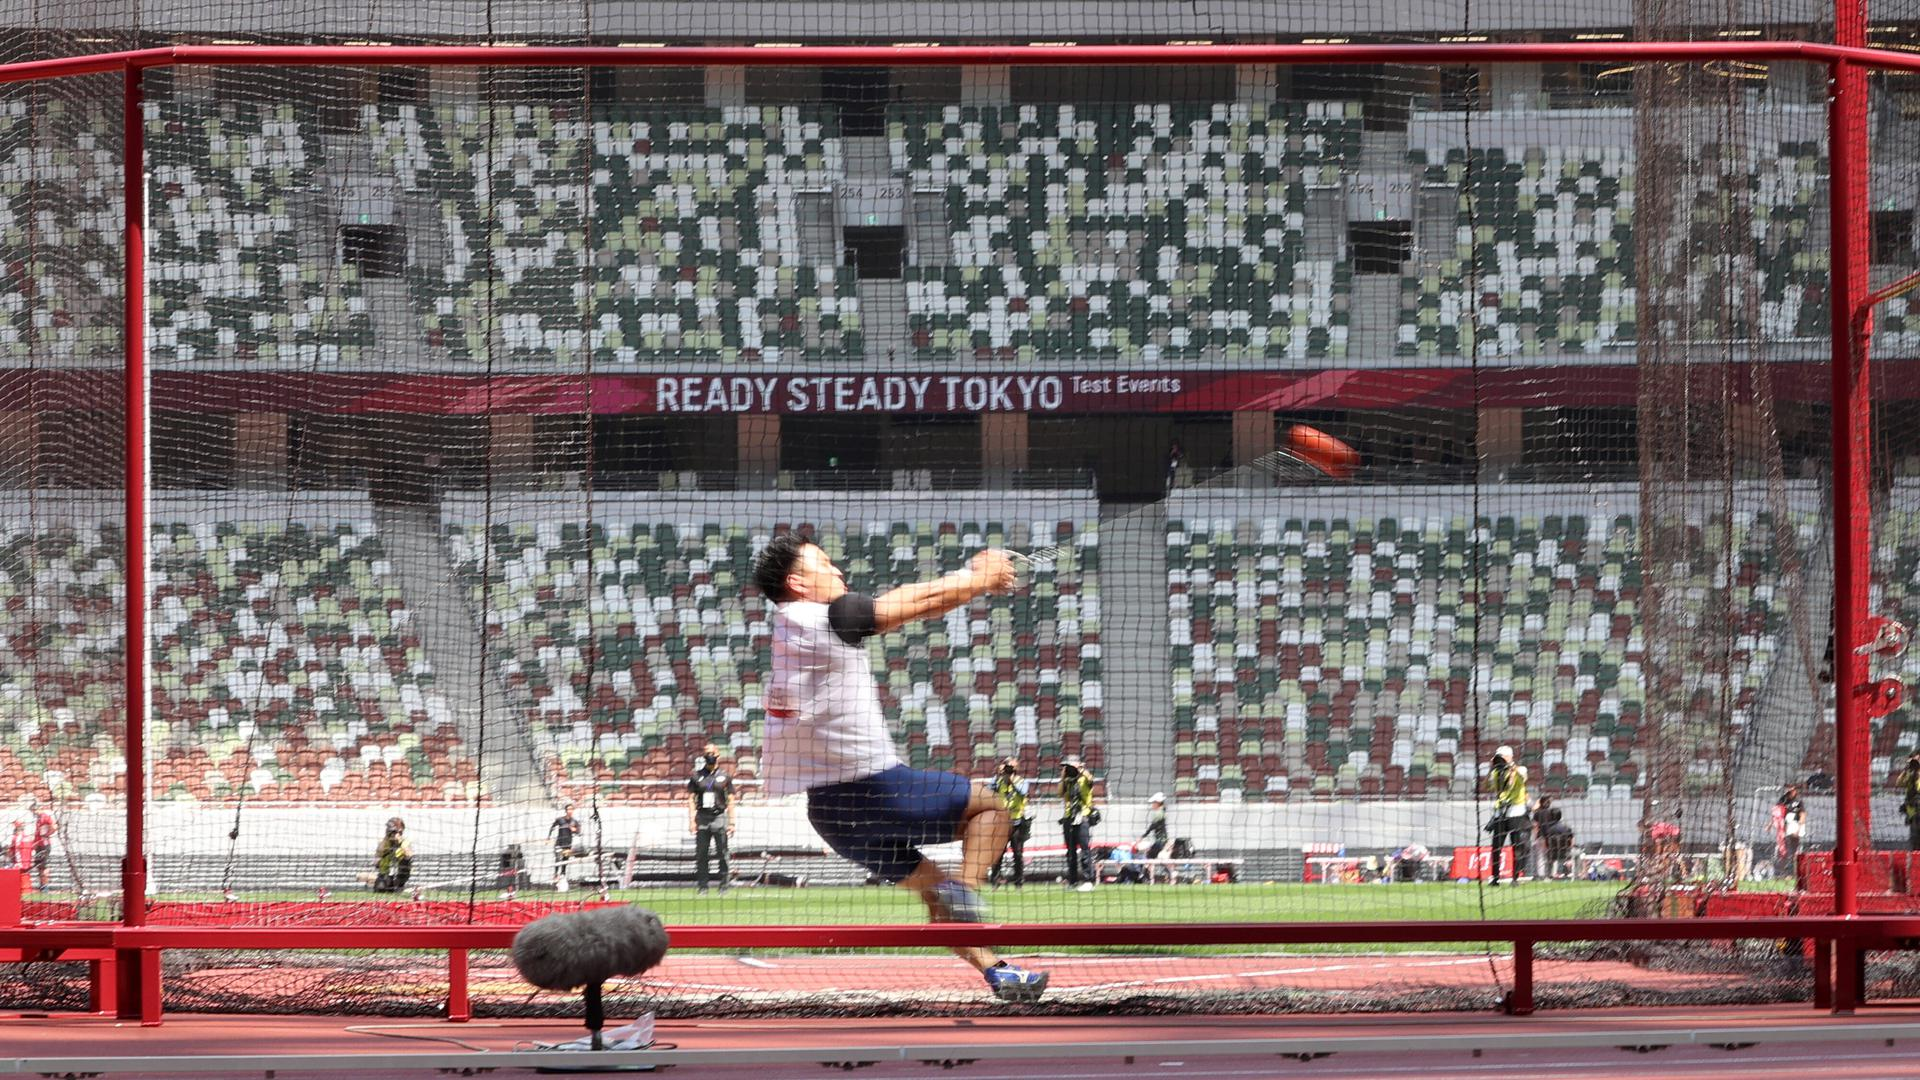 May 9, 2021, Tokyo, Japan - A Japanese athlete competes in the men s hammer throw at a track and field meet for a test event of the Tokyo 2020 Olympic Games, Olympische Spiele, Olympia, OS at the national stadium in Tokyo on Sunday, May 9, 2021. Noxthirdxpartyxsales PUBLICATIONxNOTxINxJPN 0117311956st